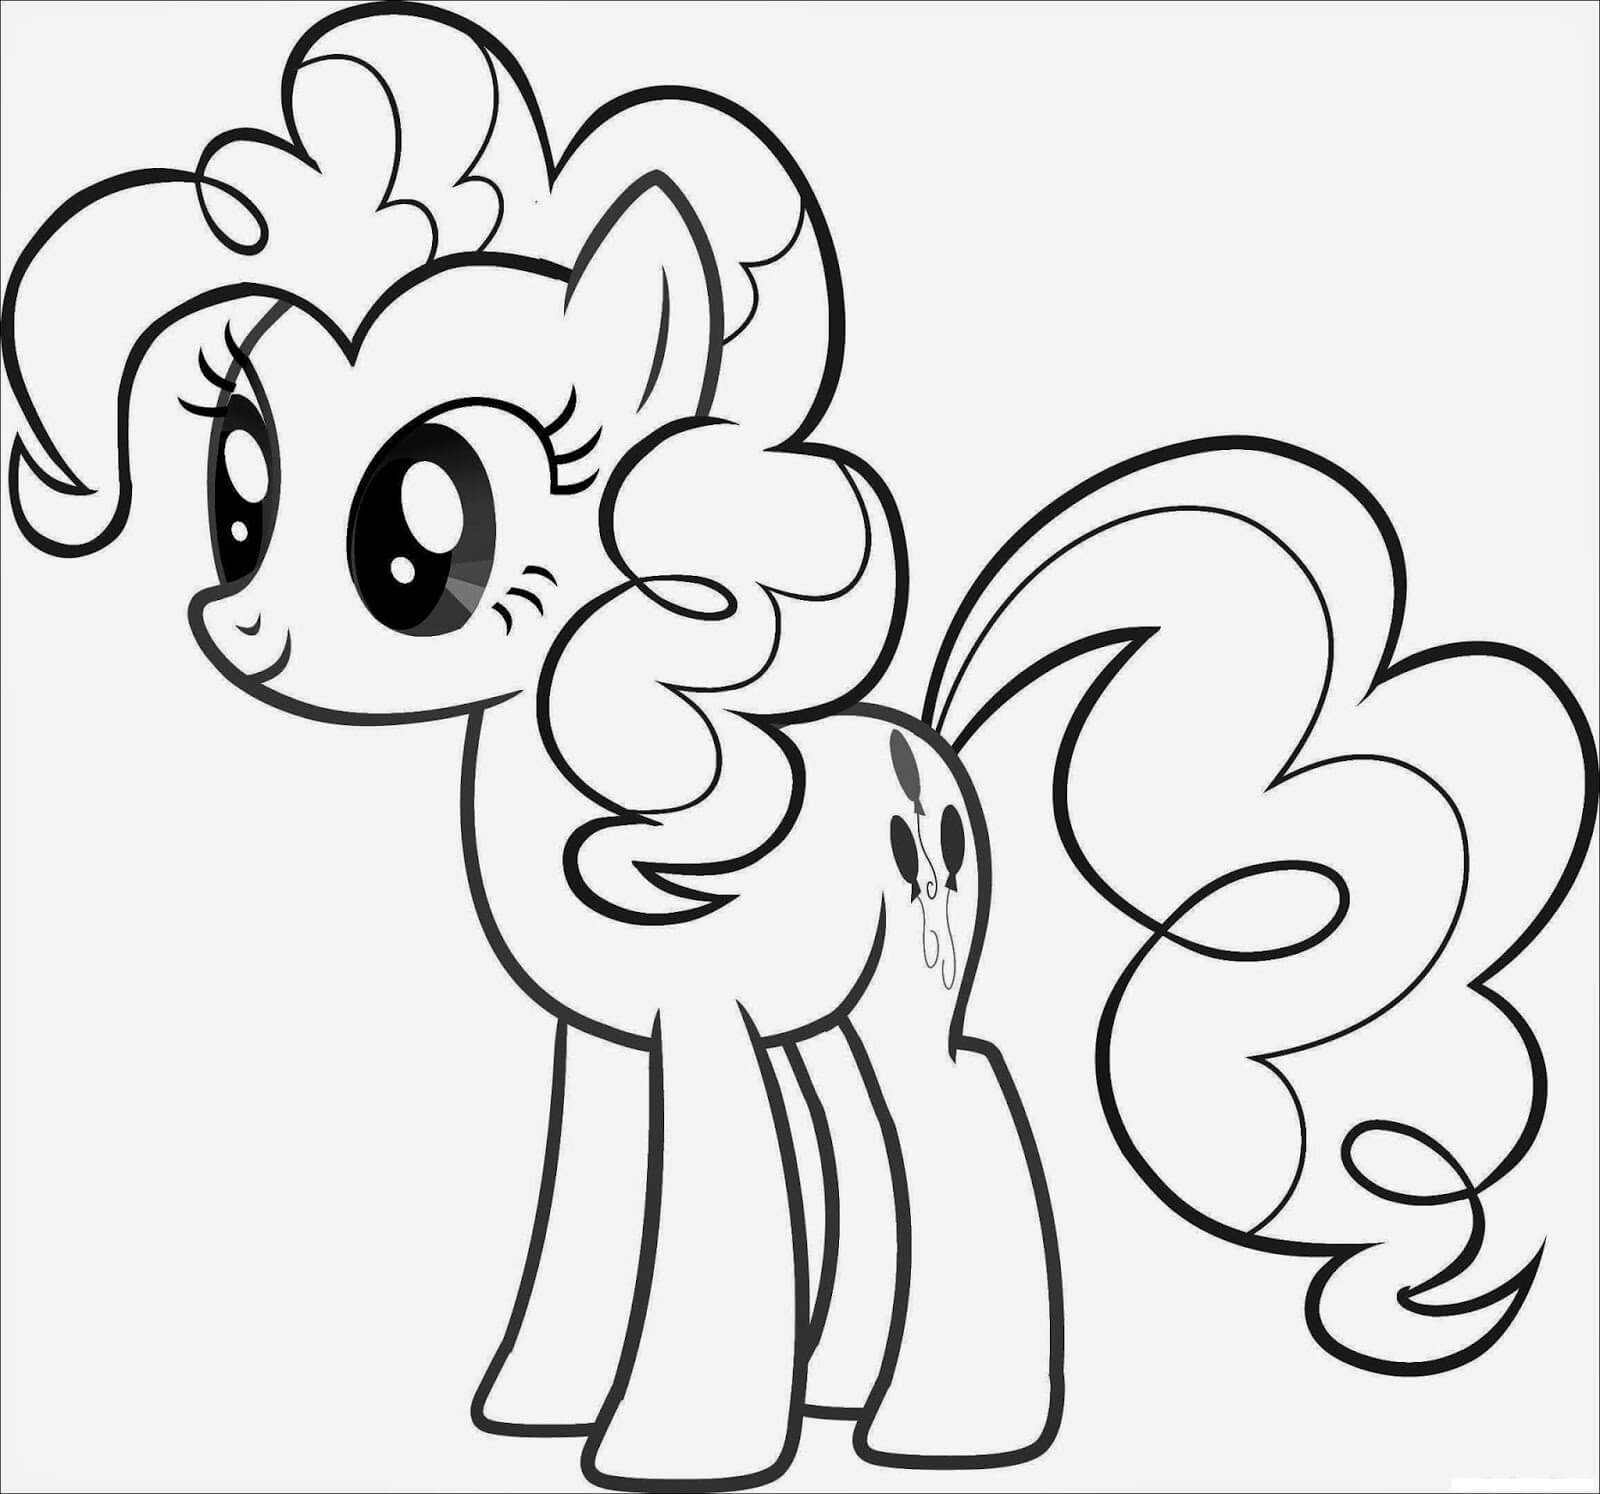 rainbow dash coloring pictures get this online printable rainbow dash coloring pages 49296 dash pictures rainbow coloring